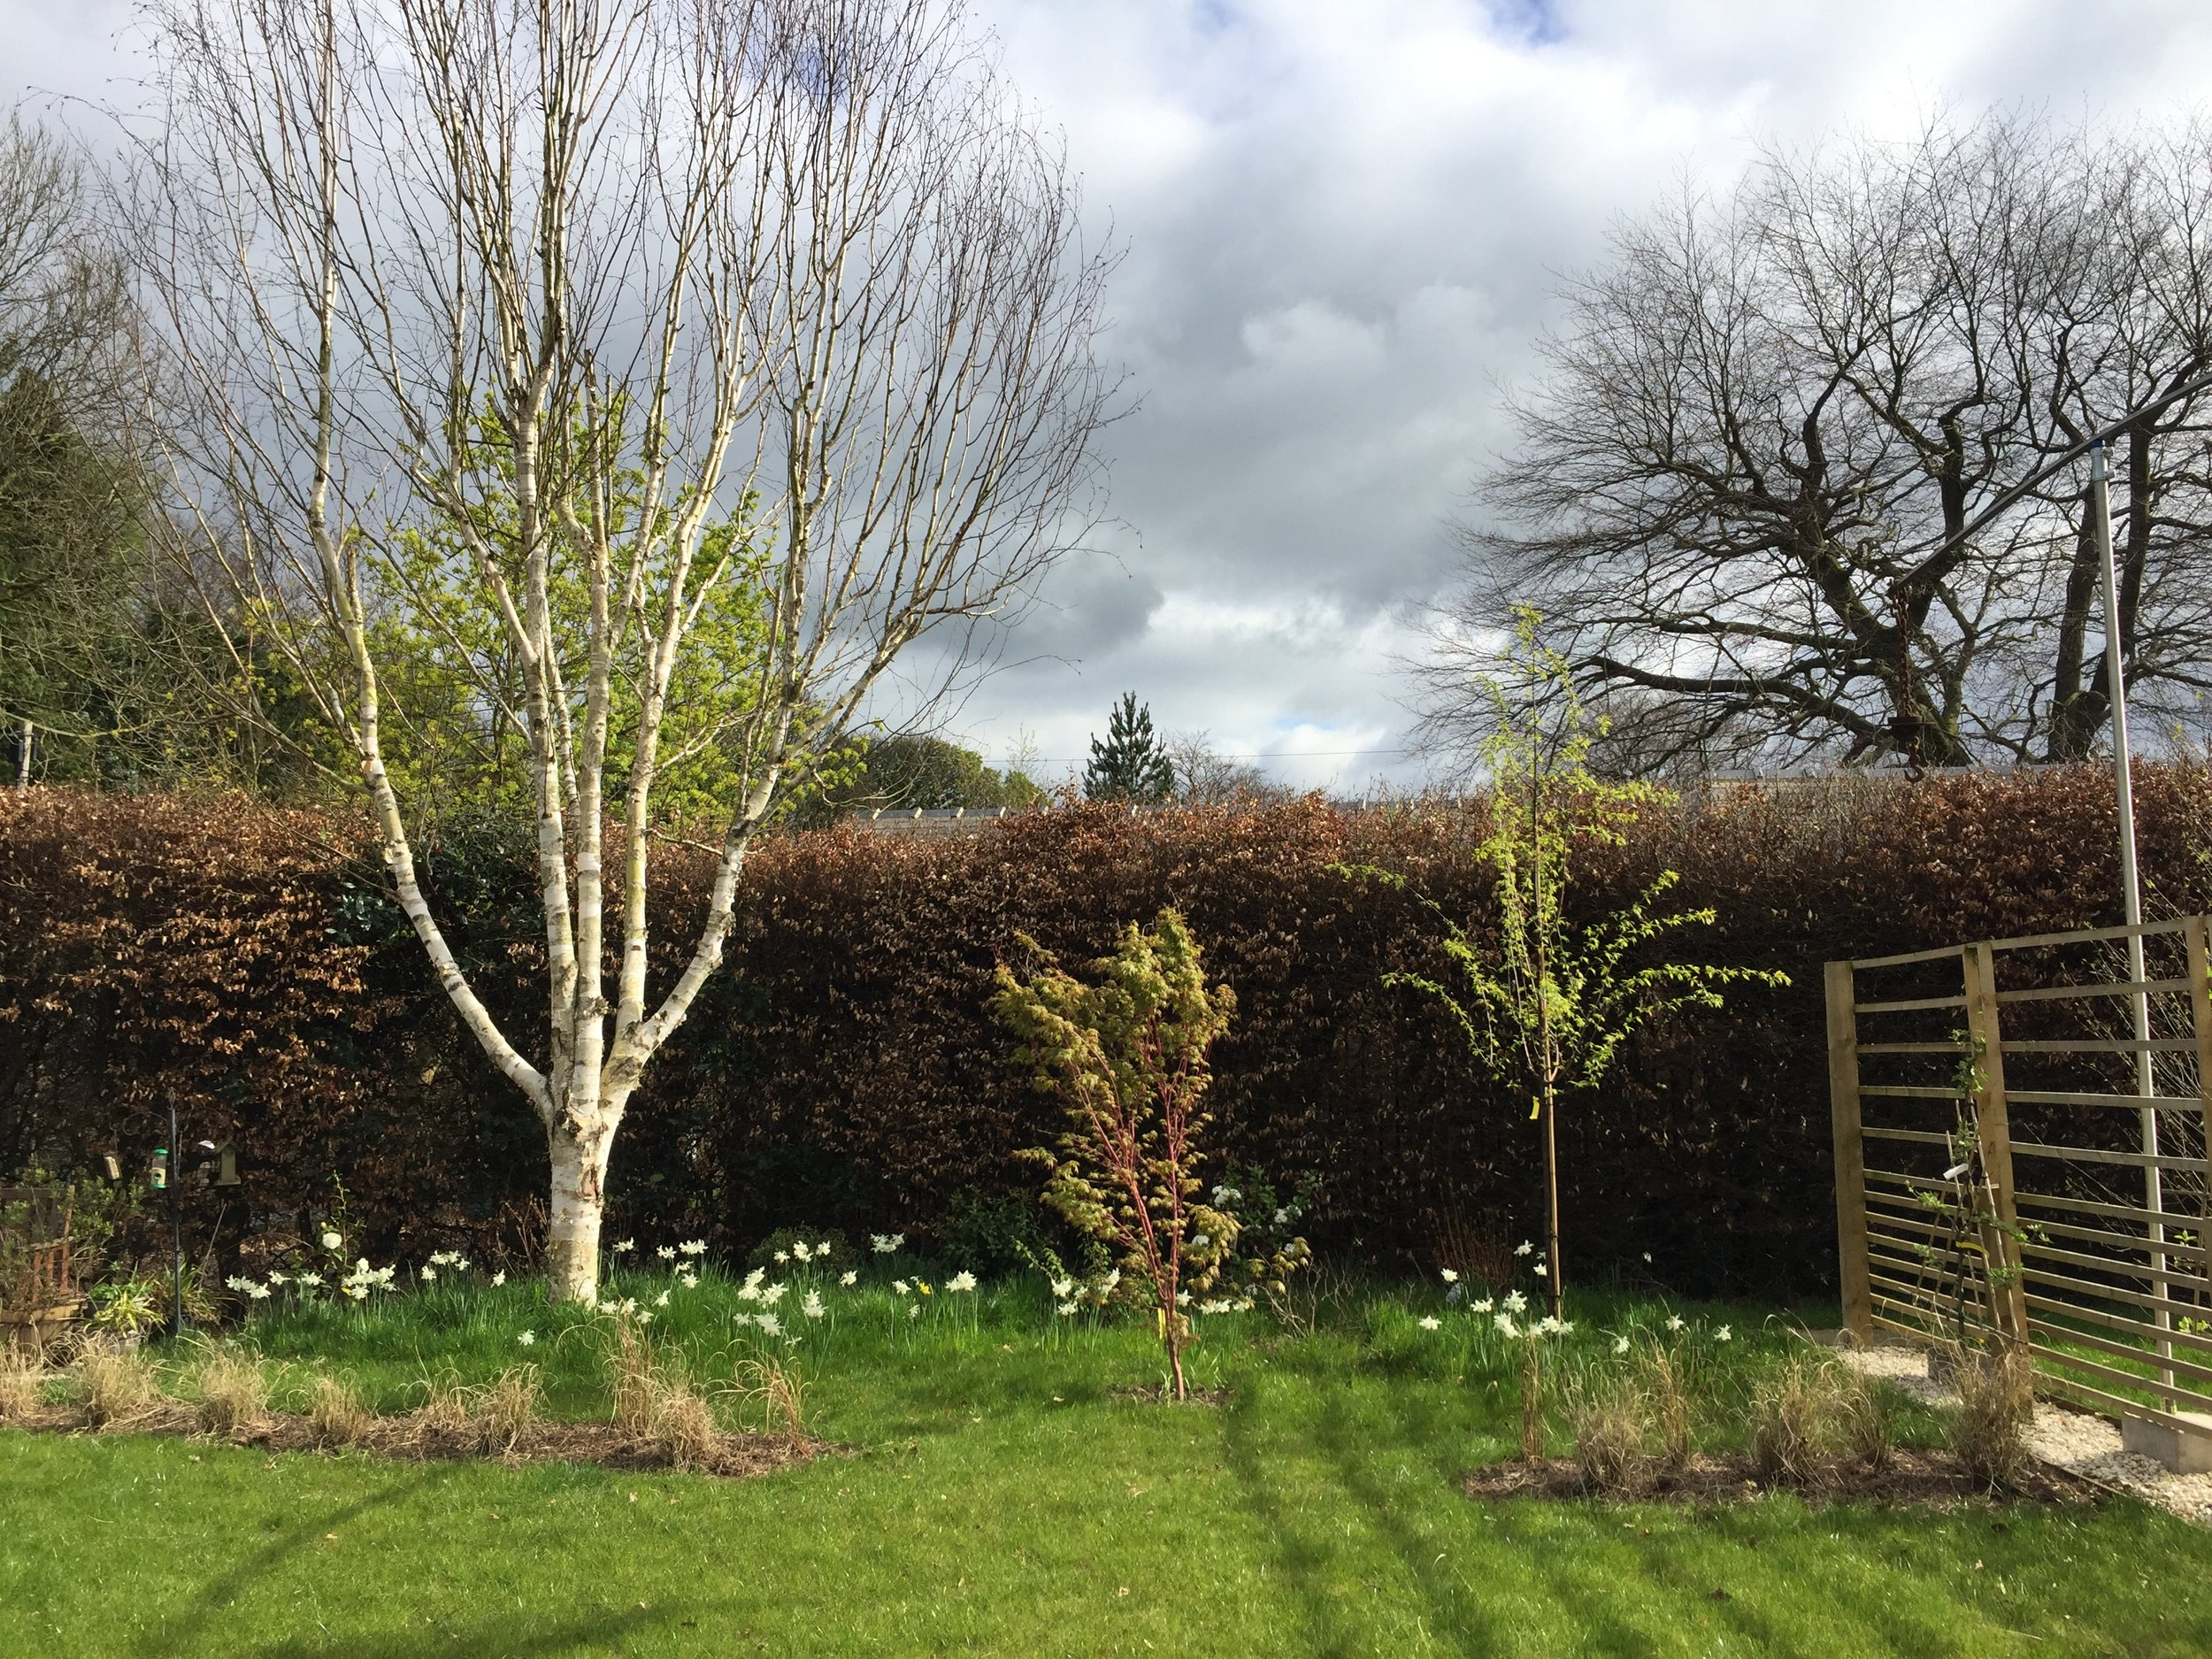 View from the house into the garden. New trees were planted to balance the existing birch.